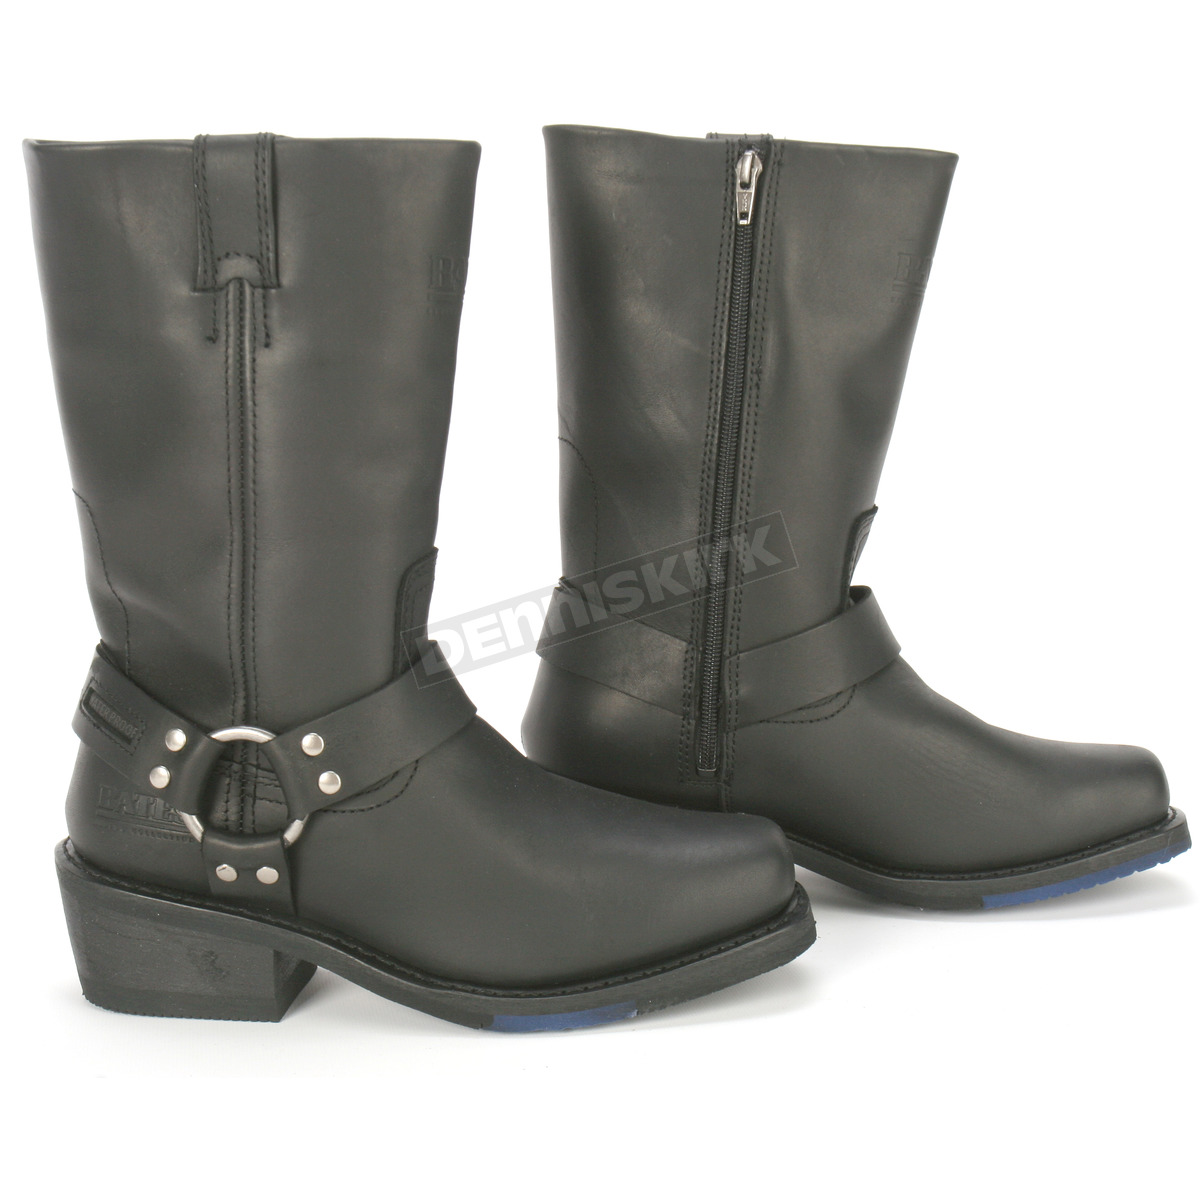 bates womens tahoe boots e47100 m55 harley motorcycle